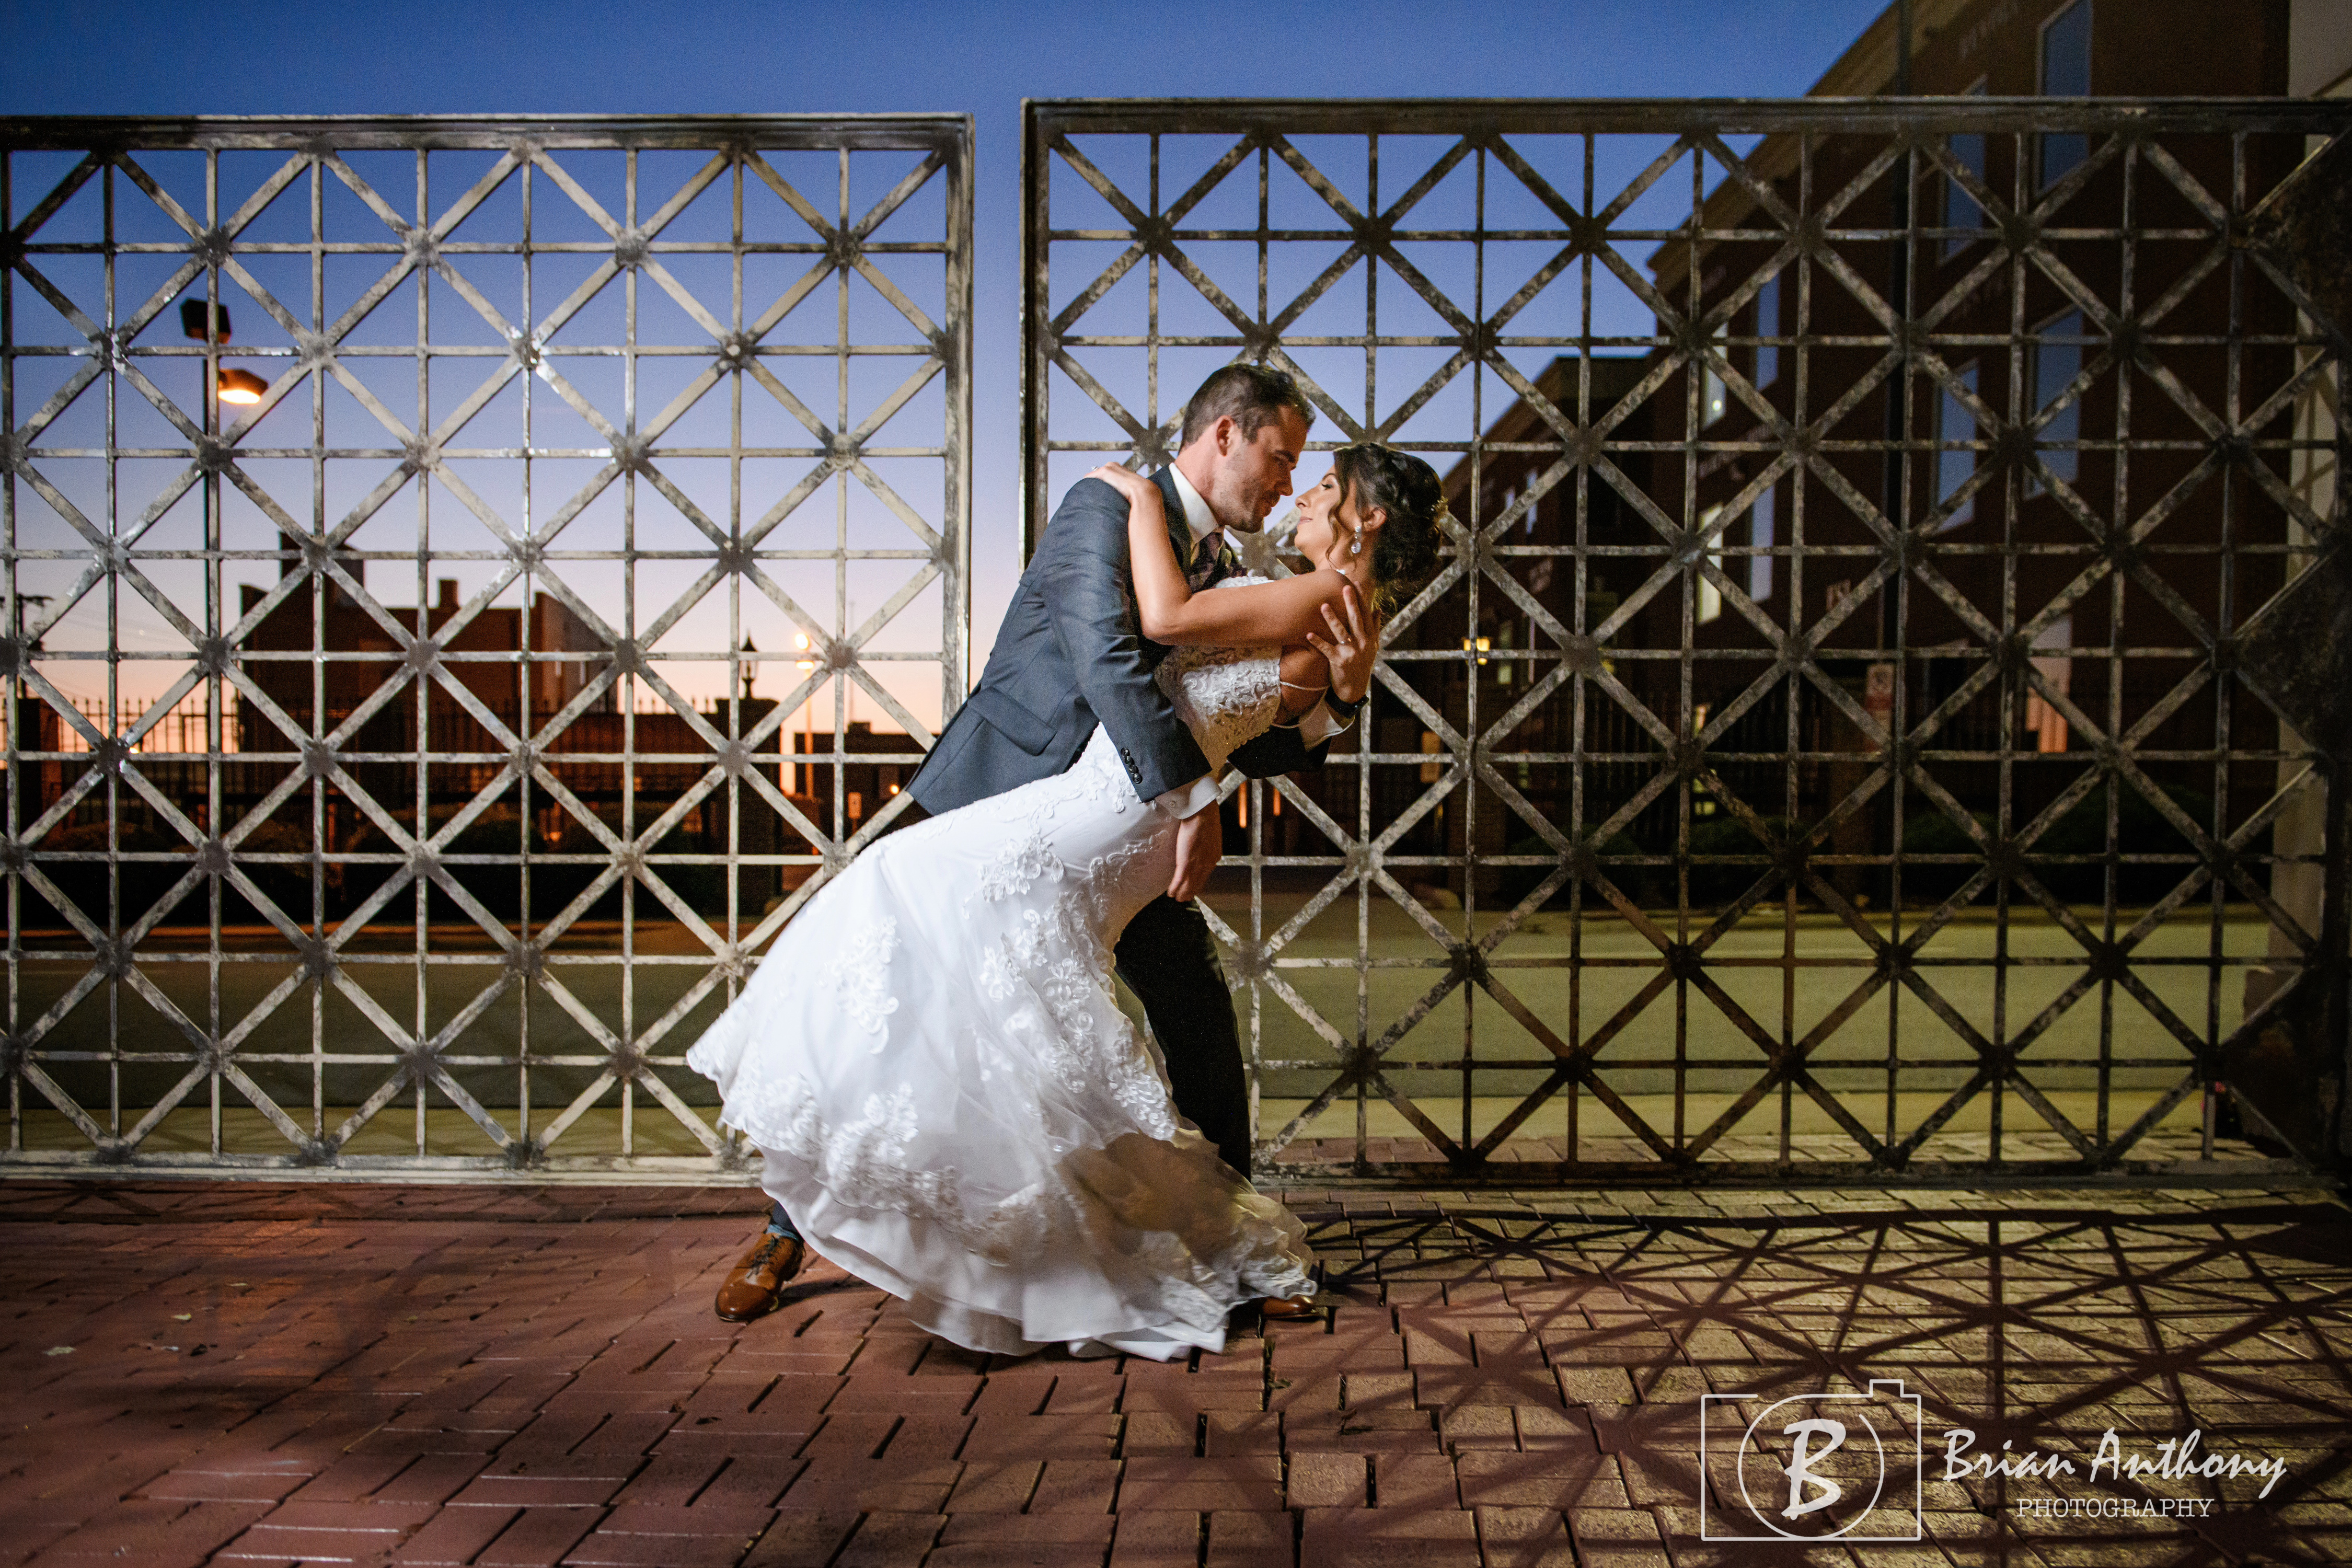 Brian + Kristy | High Point, North Carolina | Villa de l'Amour